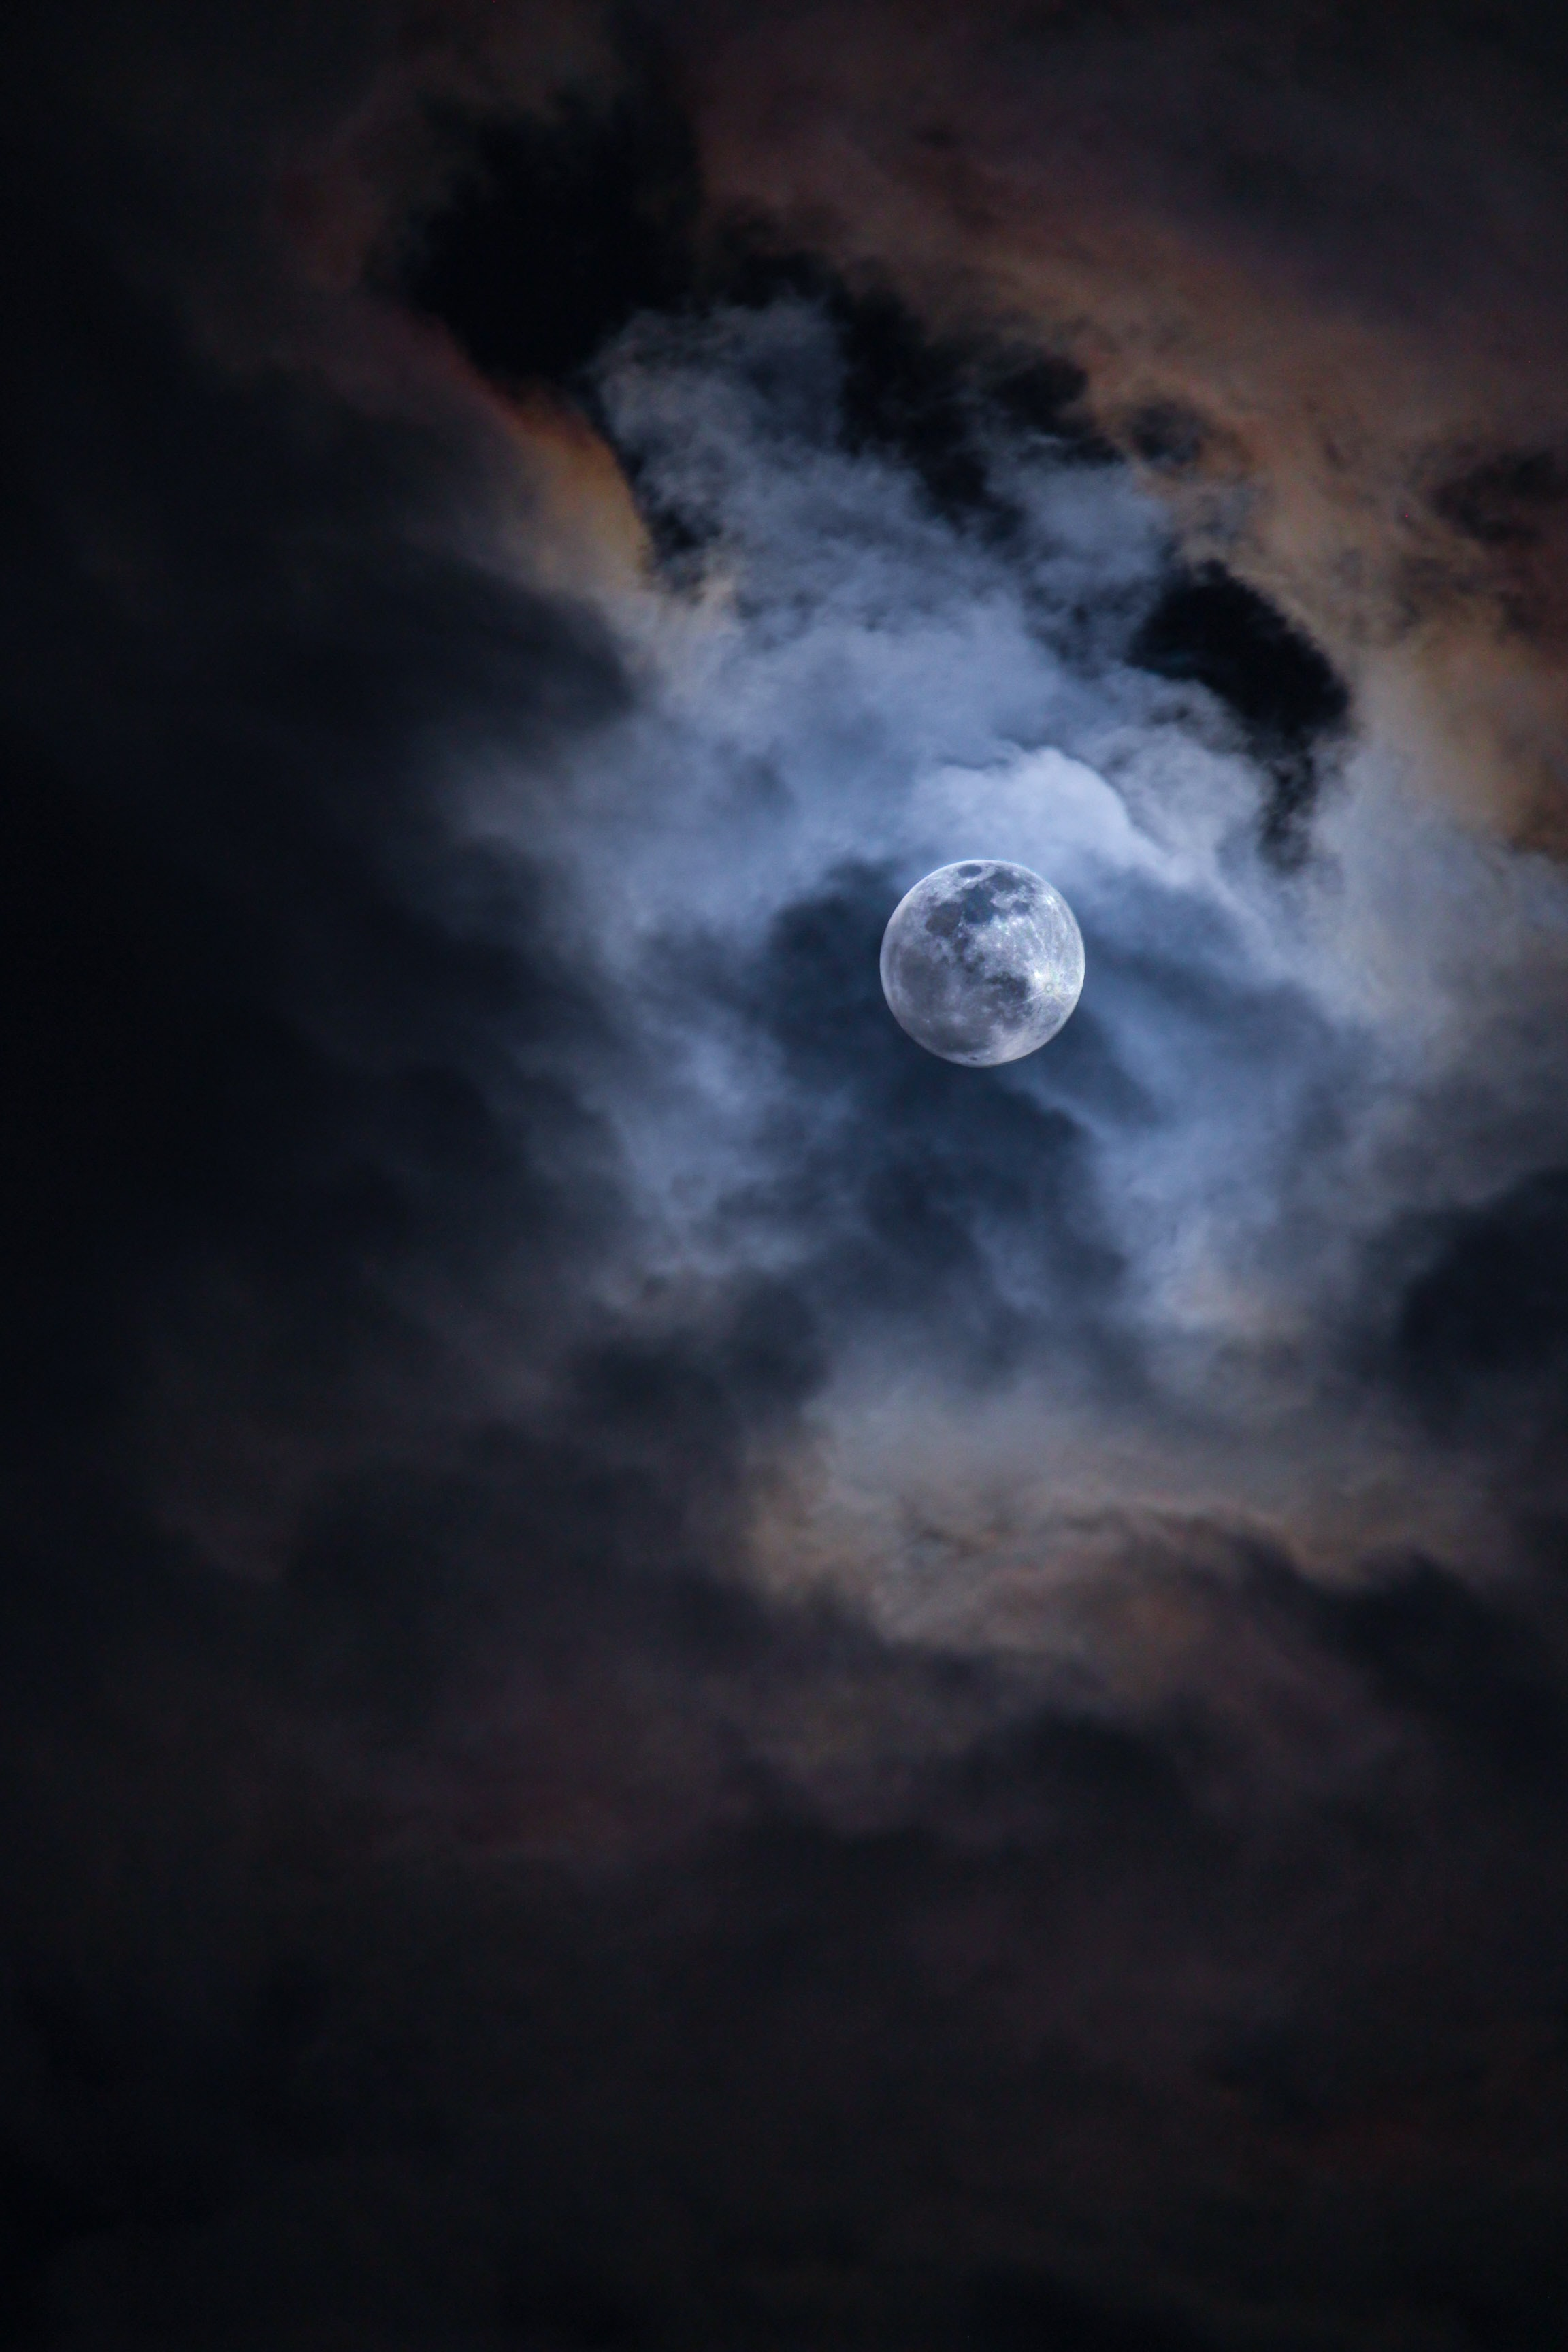 113154 download wallpaper Moon, Nature, Sky, Night, Clouds, Shine, Light screensavers and pictures for free